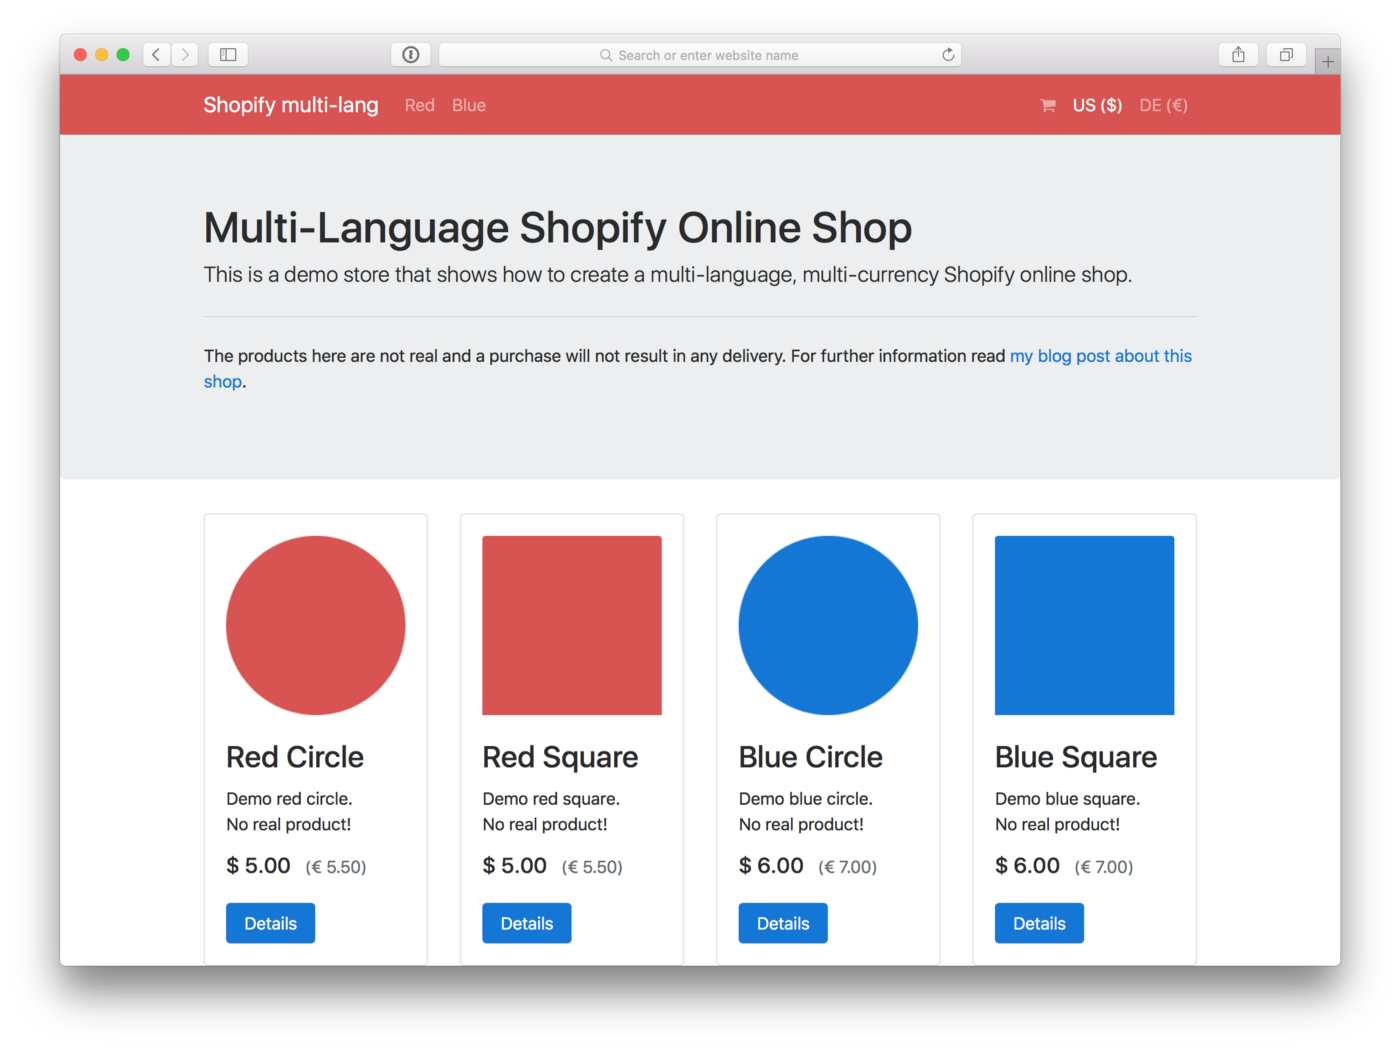 Multi-Language Shopify Online Shop - Markus Tripp - Medium